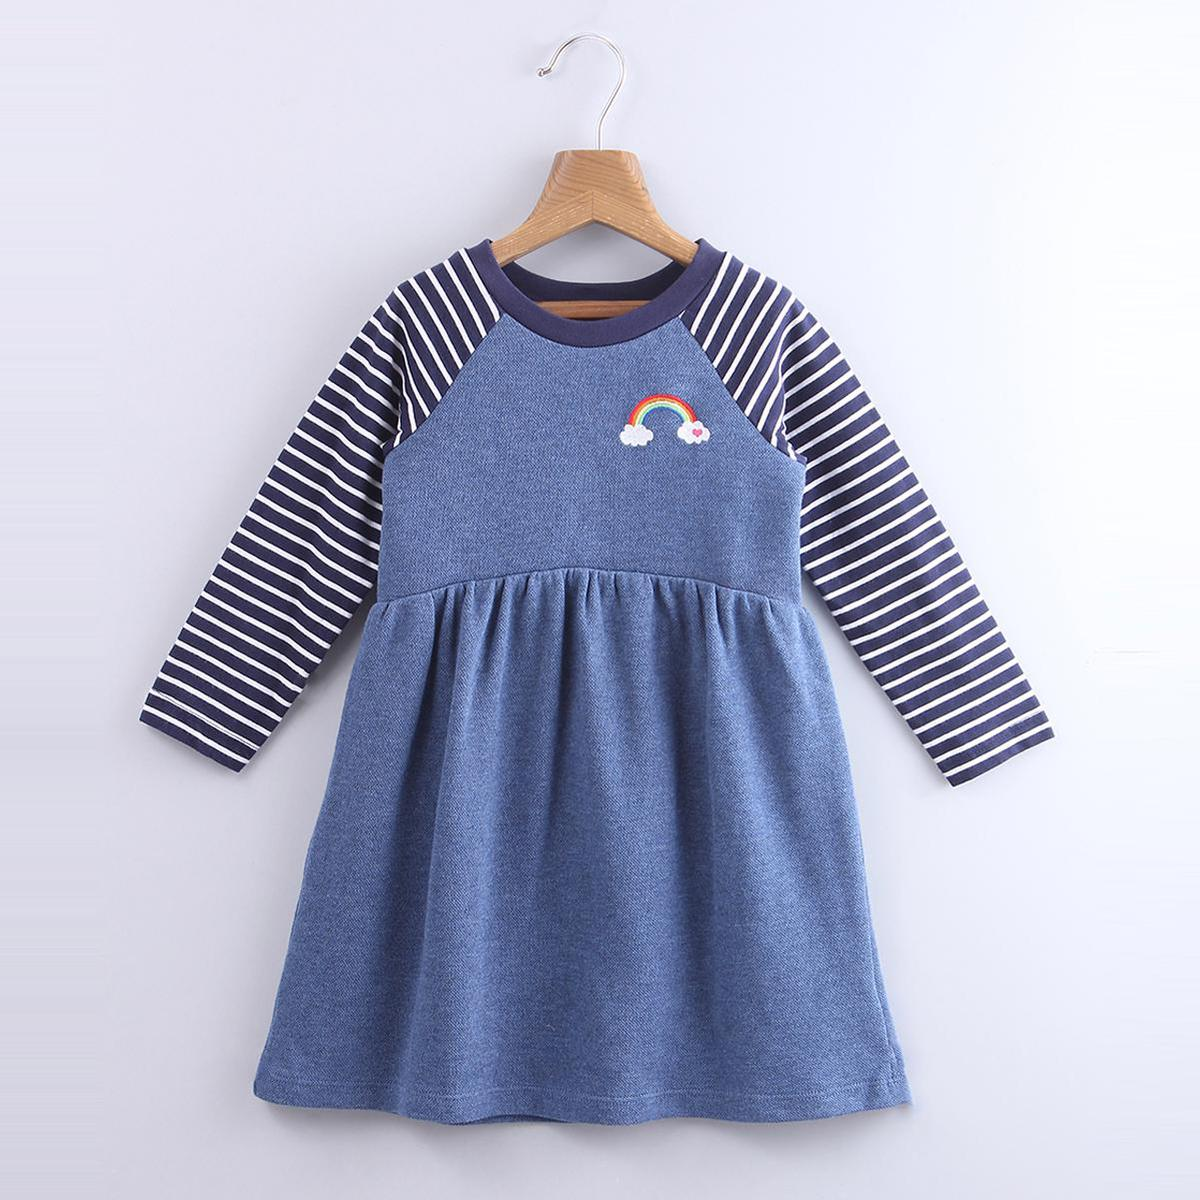 Beebay - Blue Colored Rainbow Embroidery Bodice Cotton Dress For Infants Girls